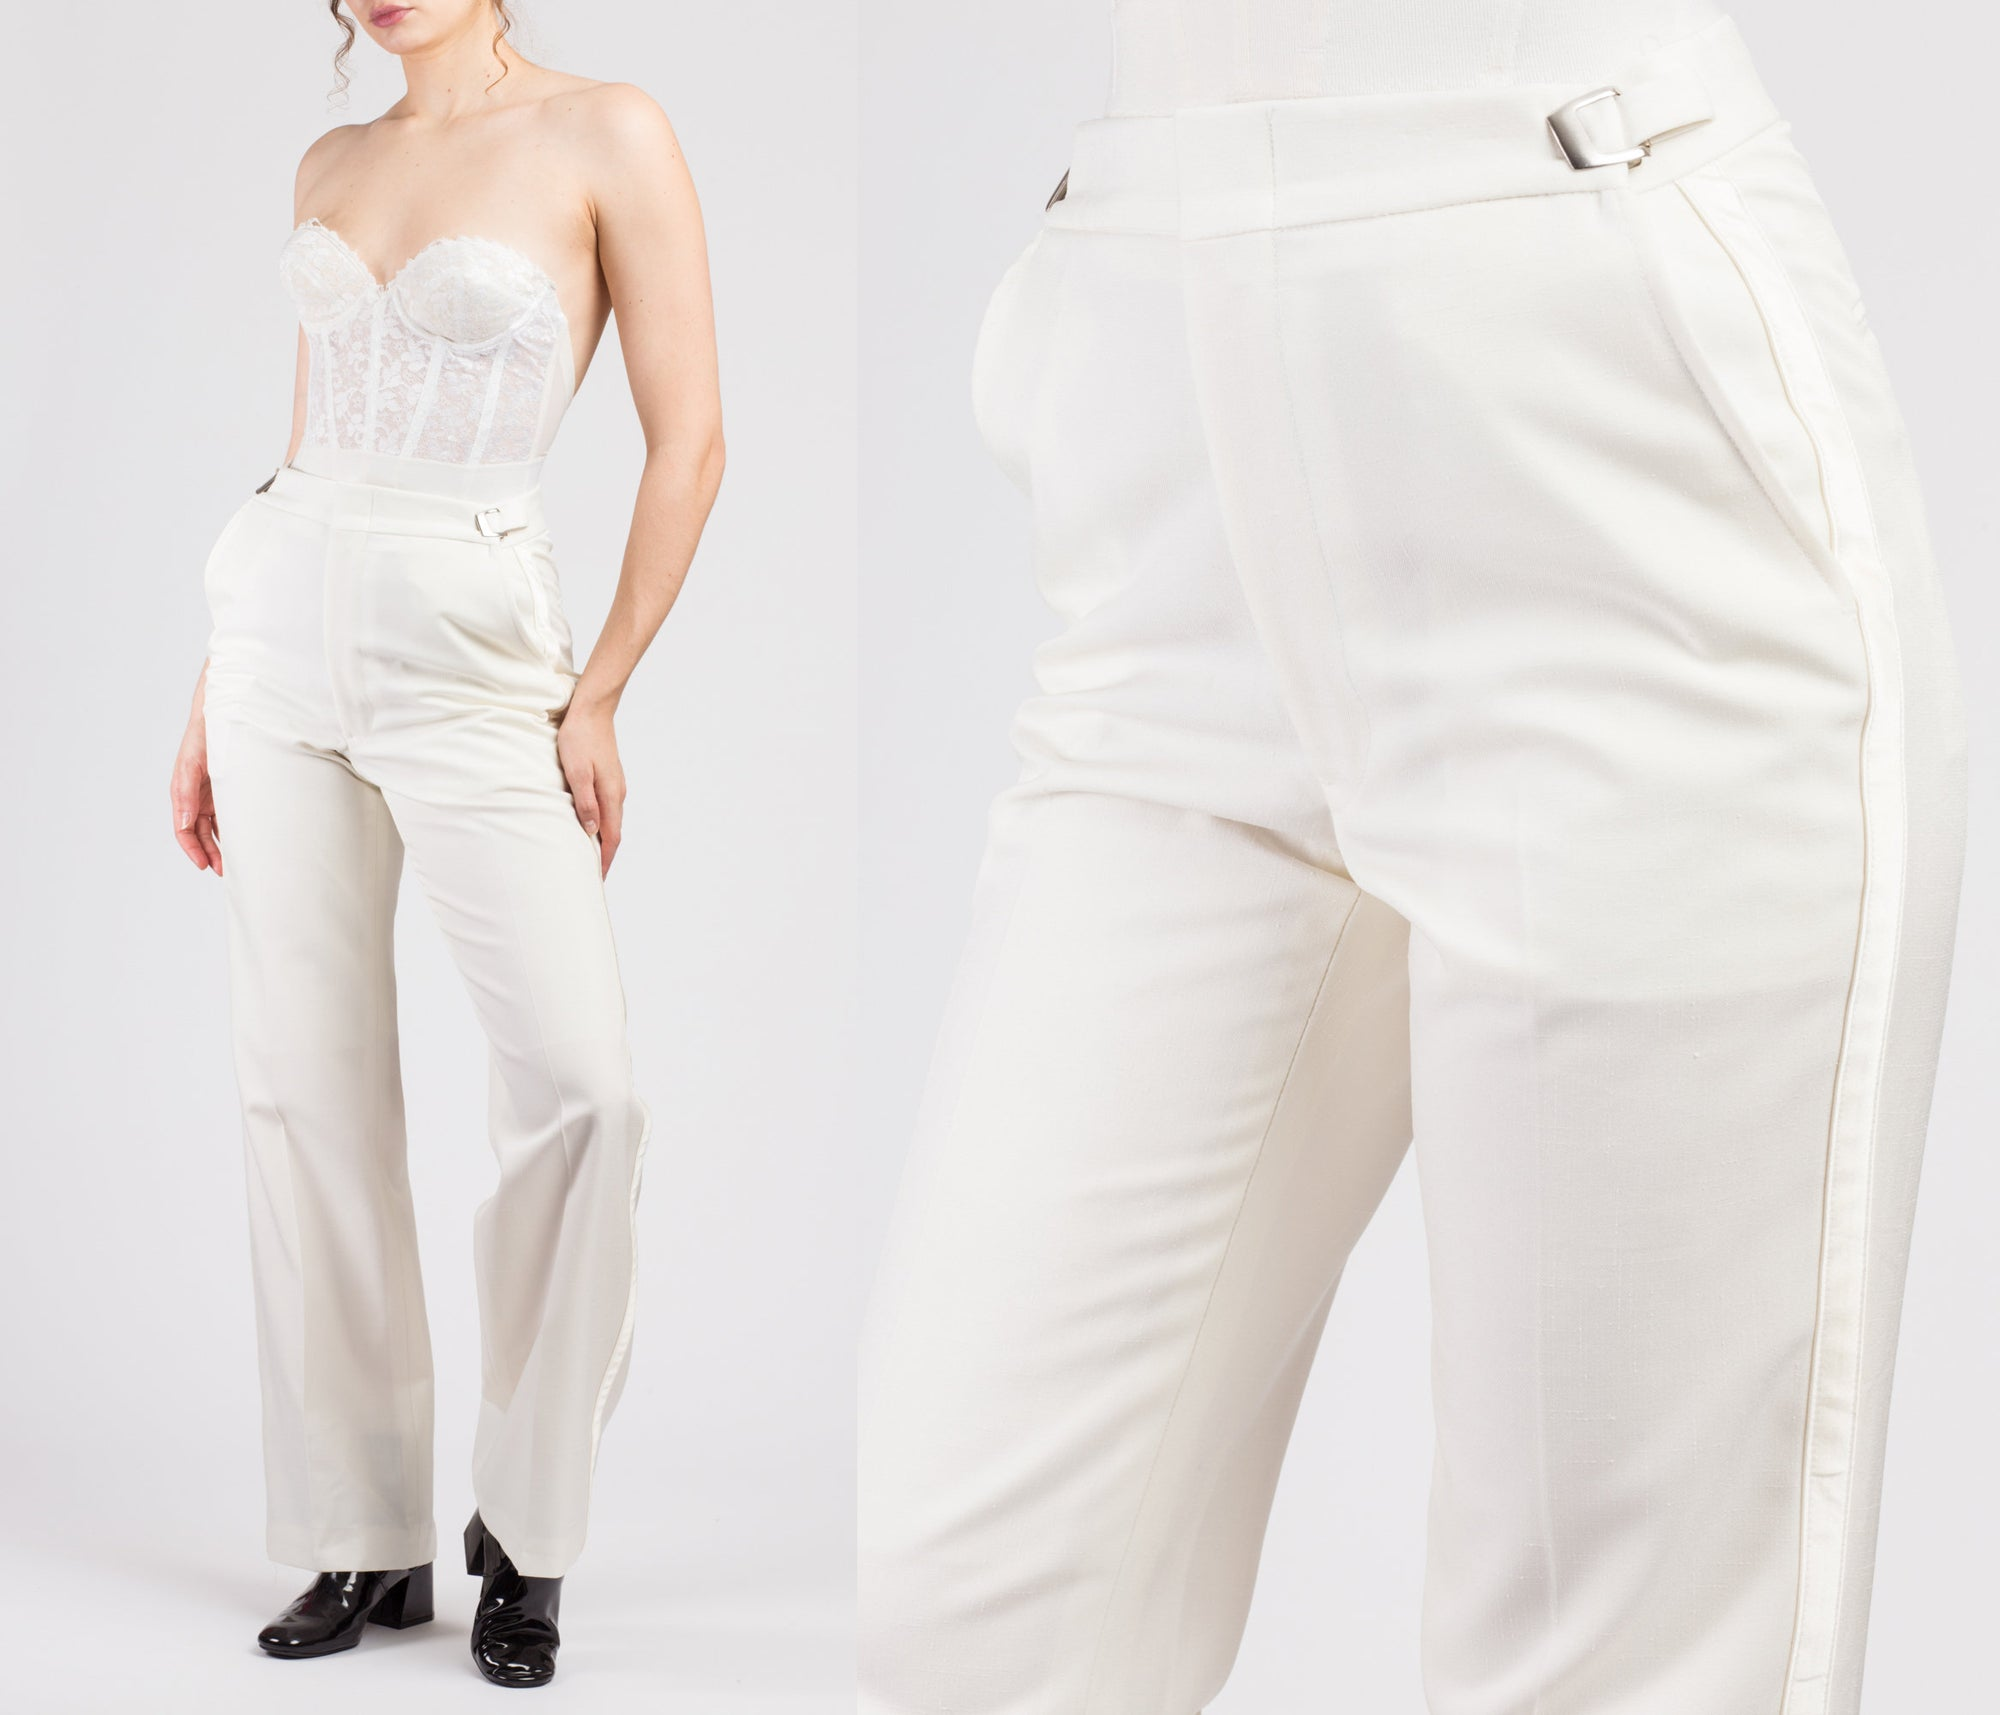 70s White Cinched Waist Men's Pants - Medium